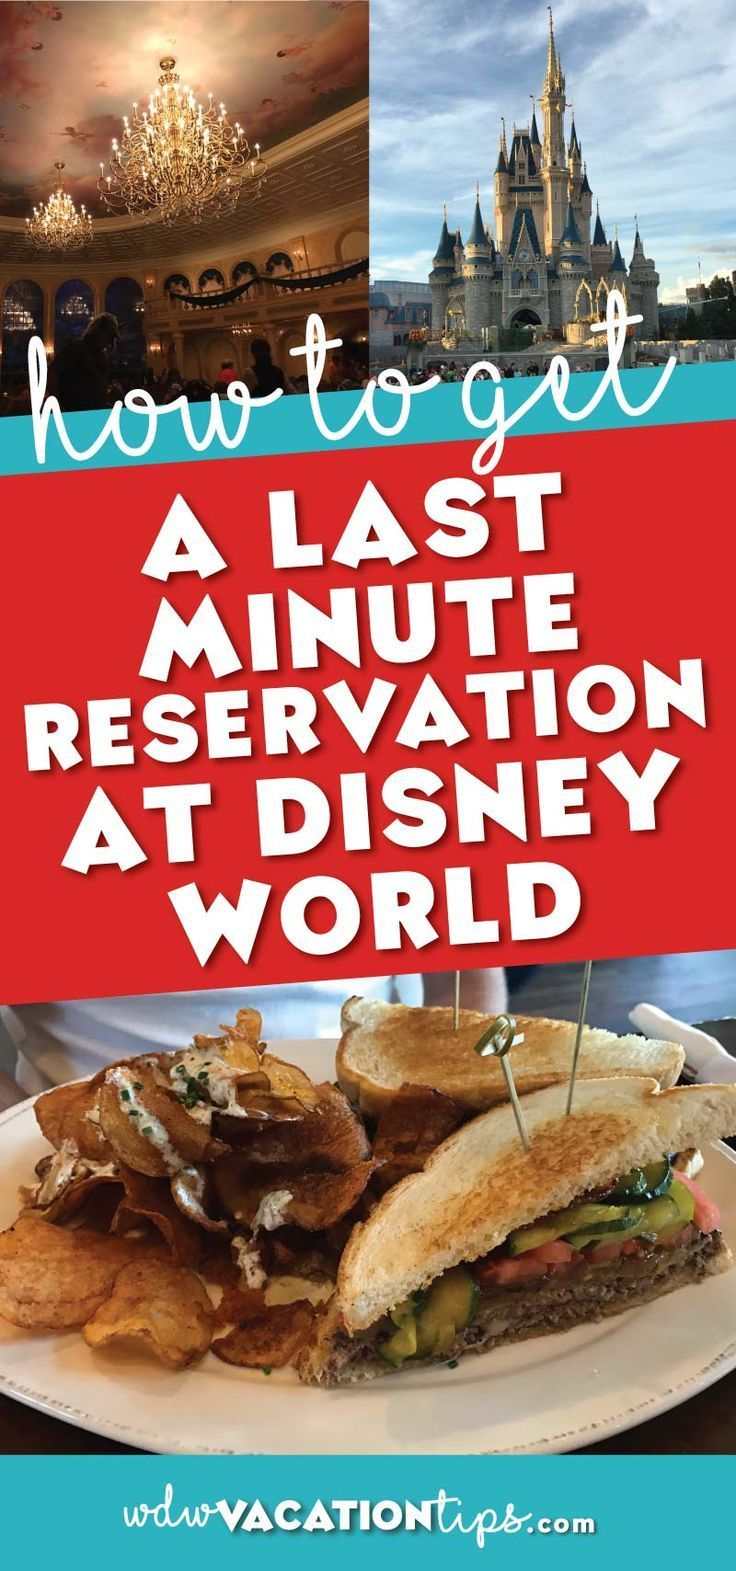 Top tips and steps on how to get a last minute reservation at Disney World. One of the biggest disappointments you can face on your Disney World vacation is not getting a chance to eat where you want.